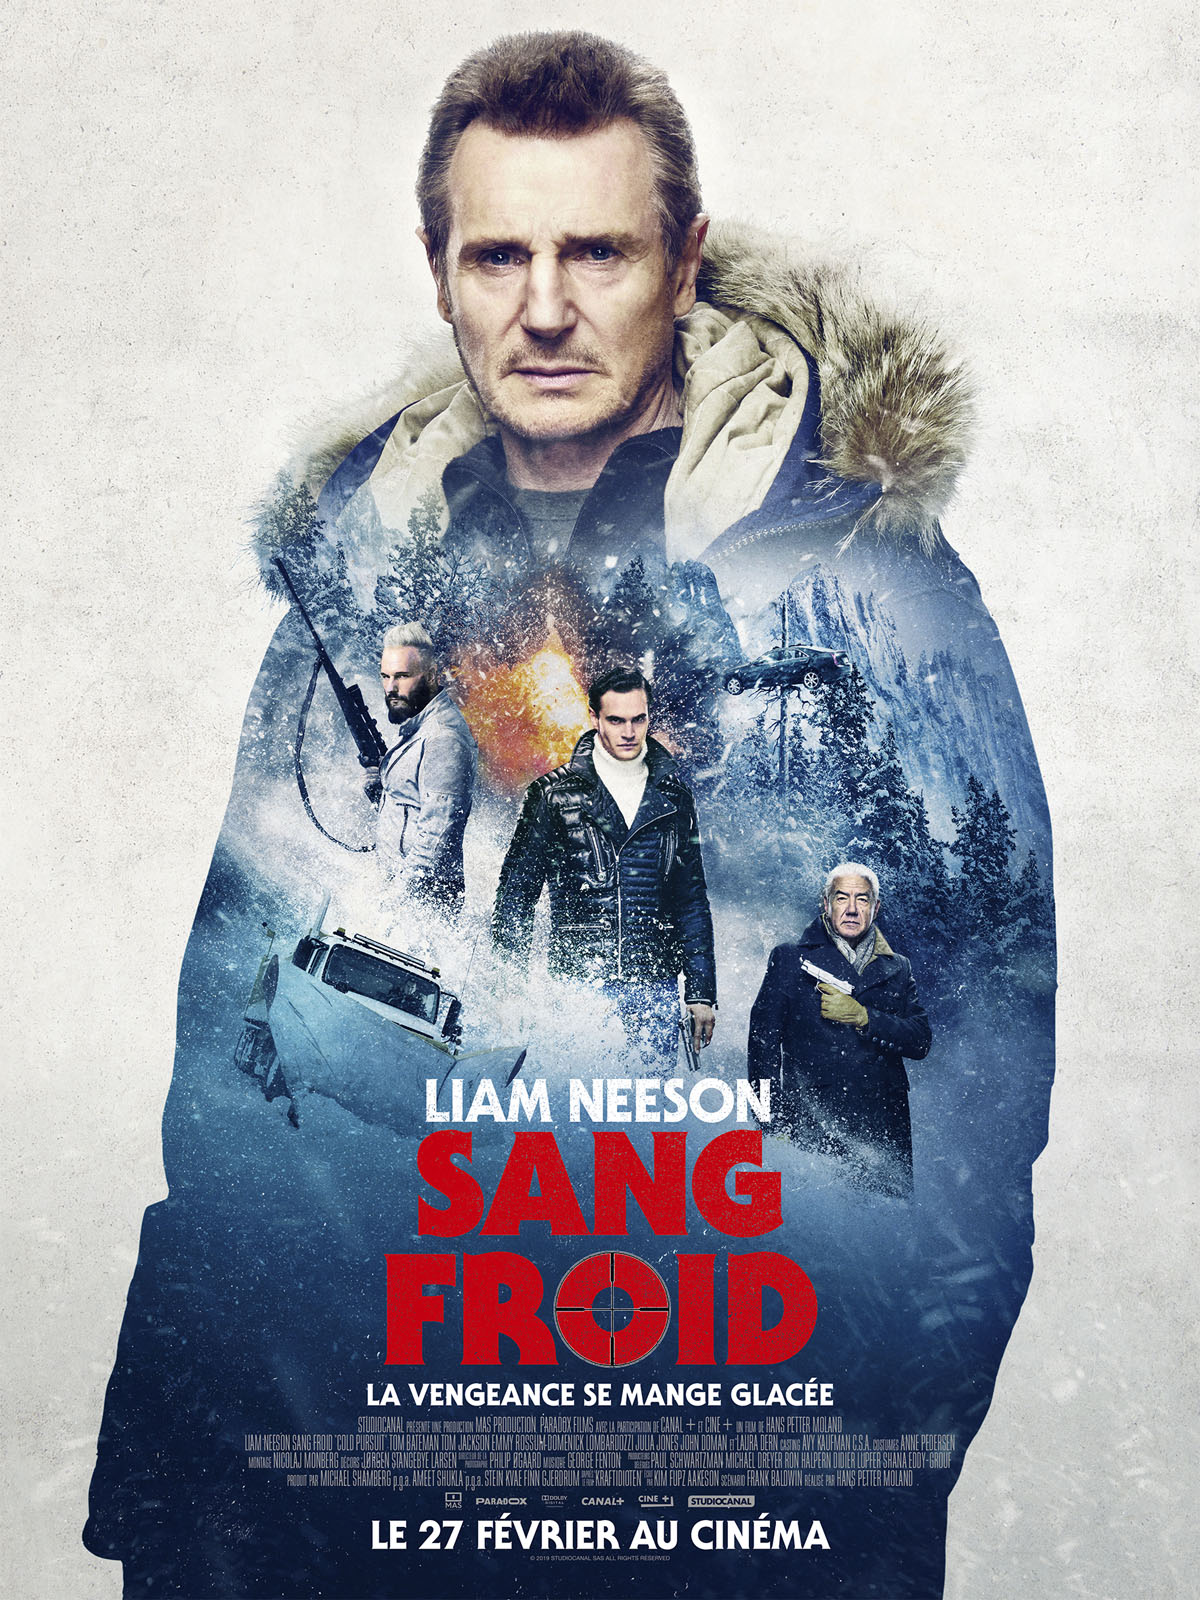 Sang froid - film 2019 streaming